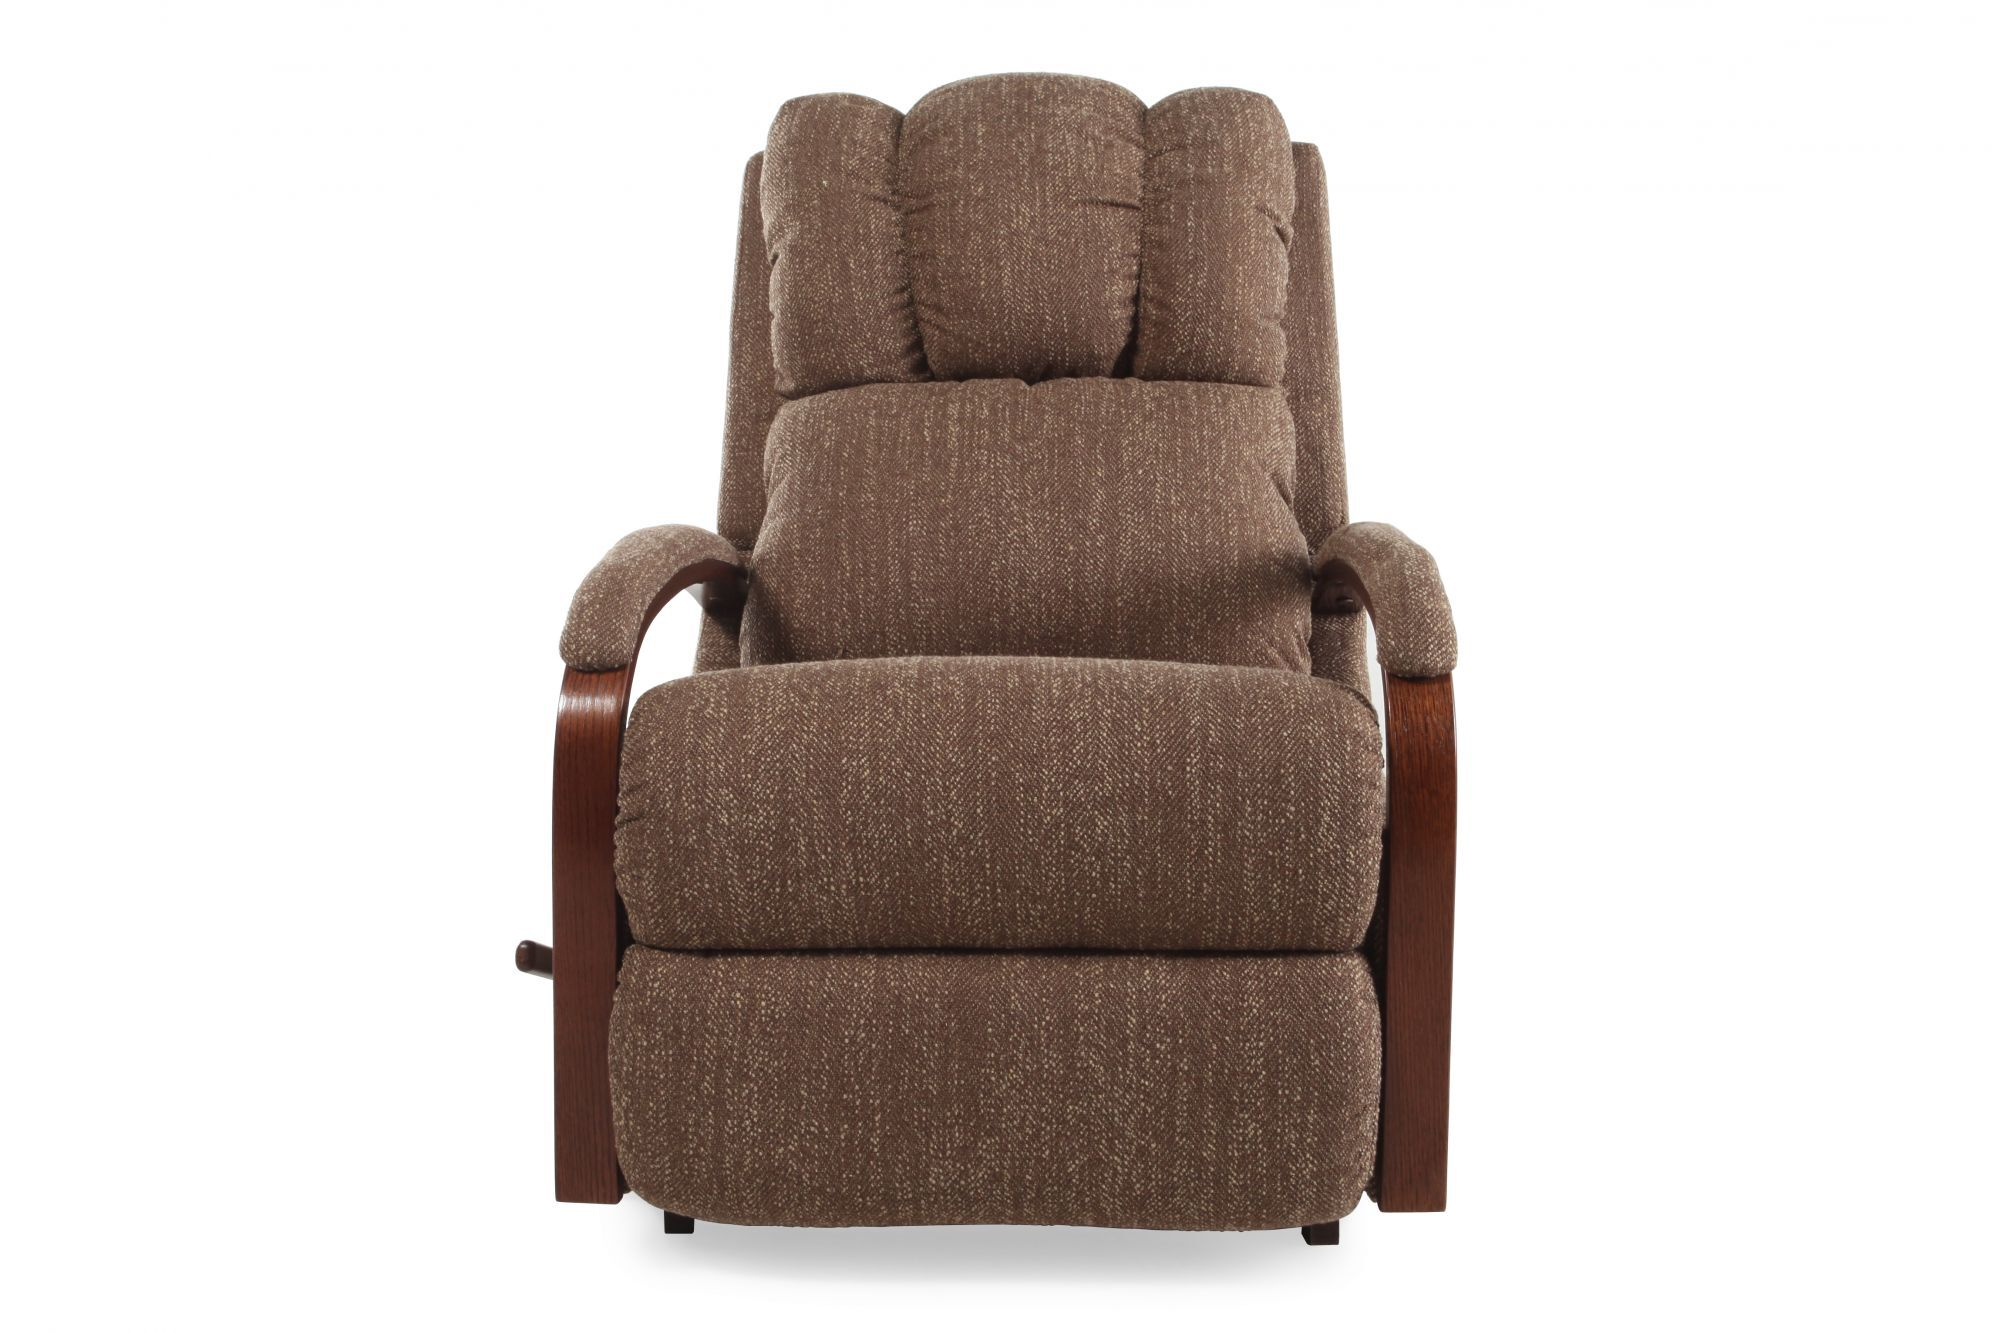 La-Z-Boy Harbor Town Mocha Recliner  sc 1 st  Mathis Brothers & La-Z-Boy Harbor Town Mocha Recliner | Mathis Brothers Furniture islam-shia.org